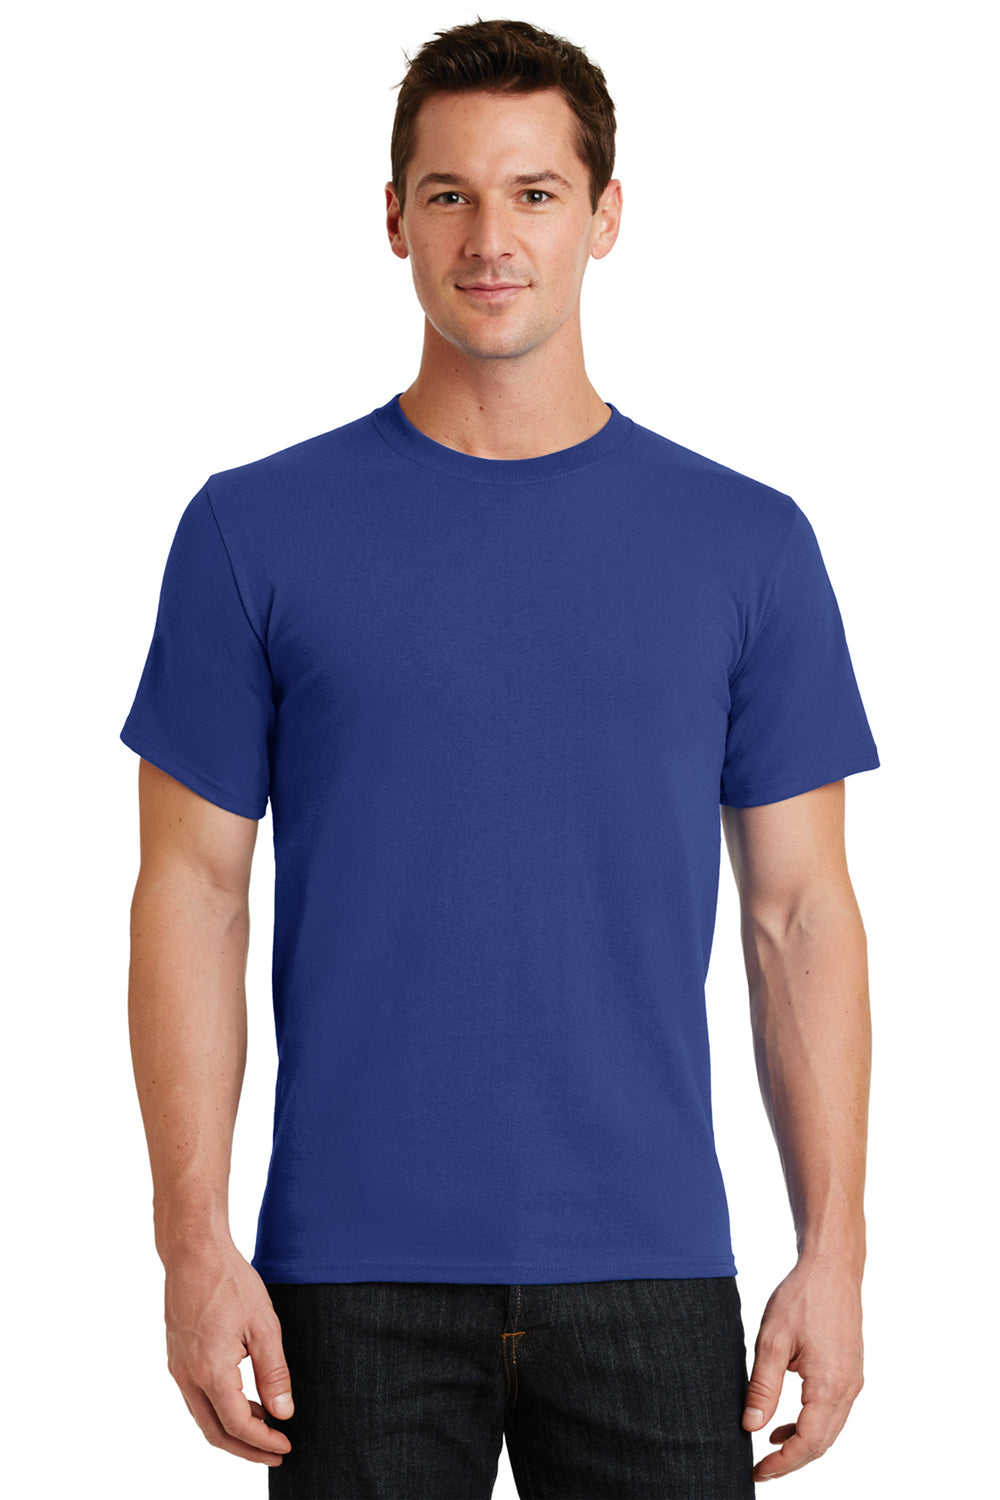 Port & Company PC61 Mens Essential Short Sleeve Crewneck T-Shirt Deep Marine Blue Front